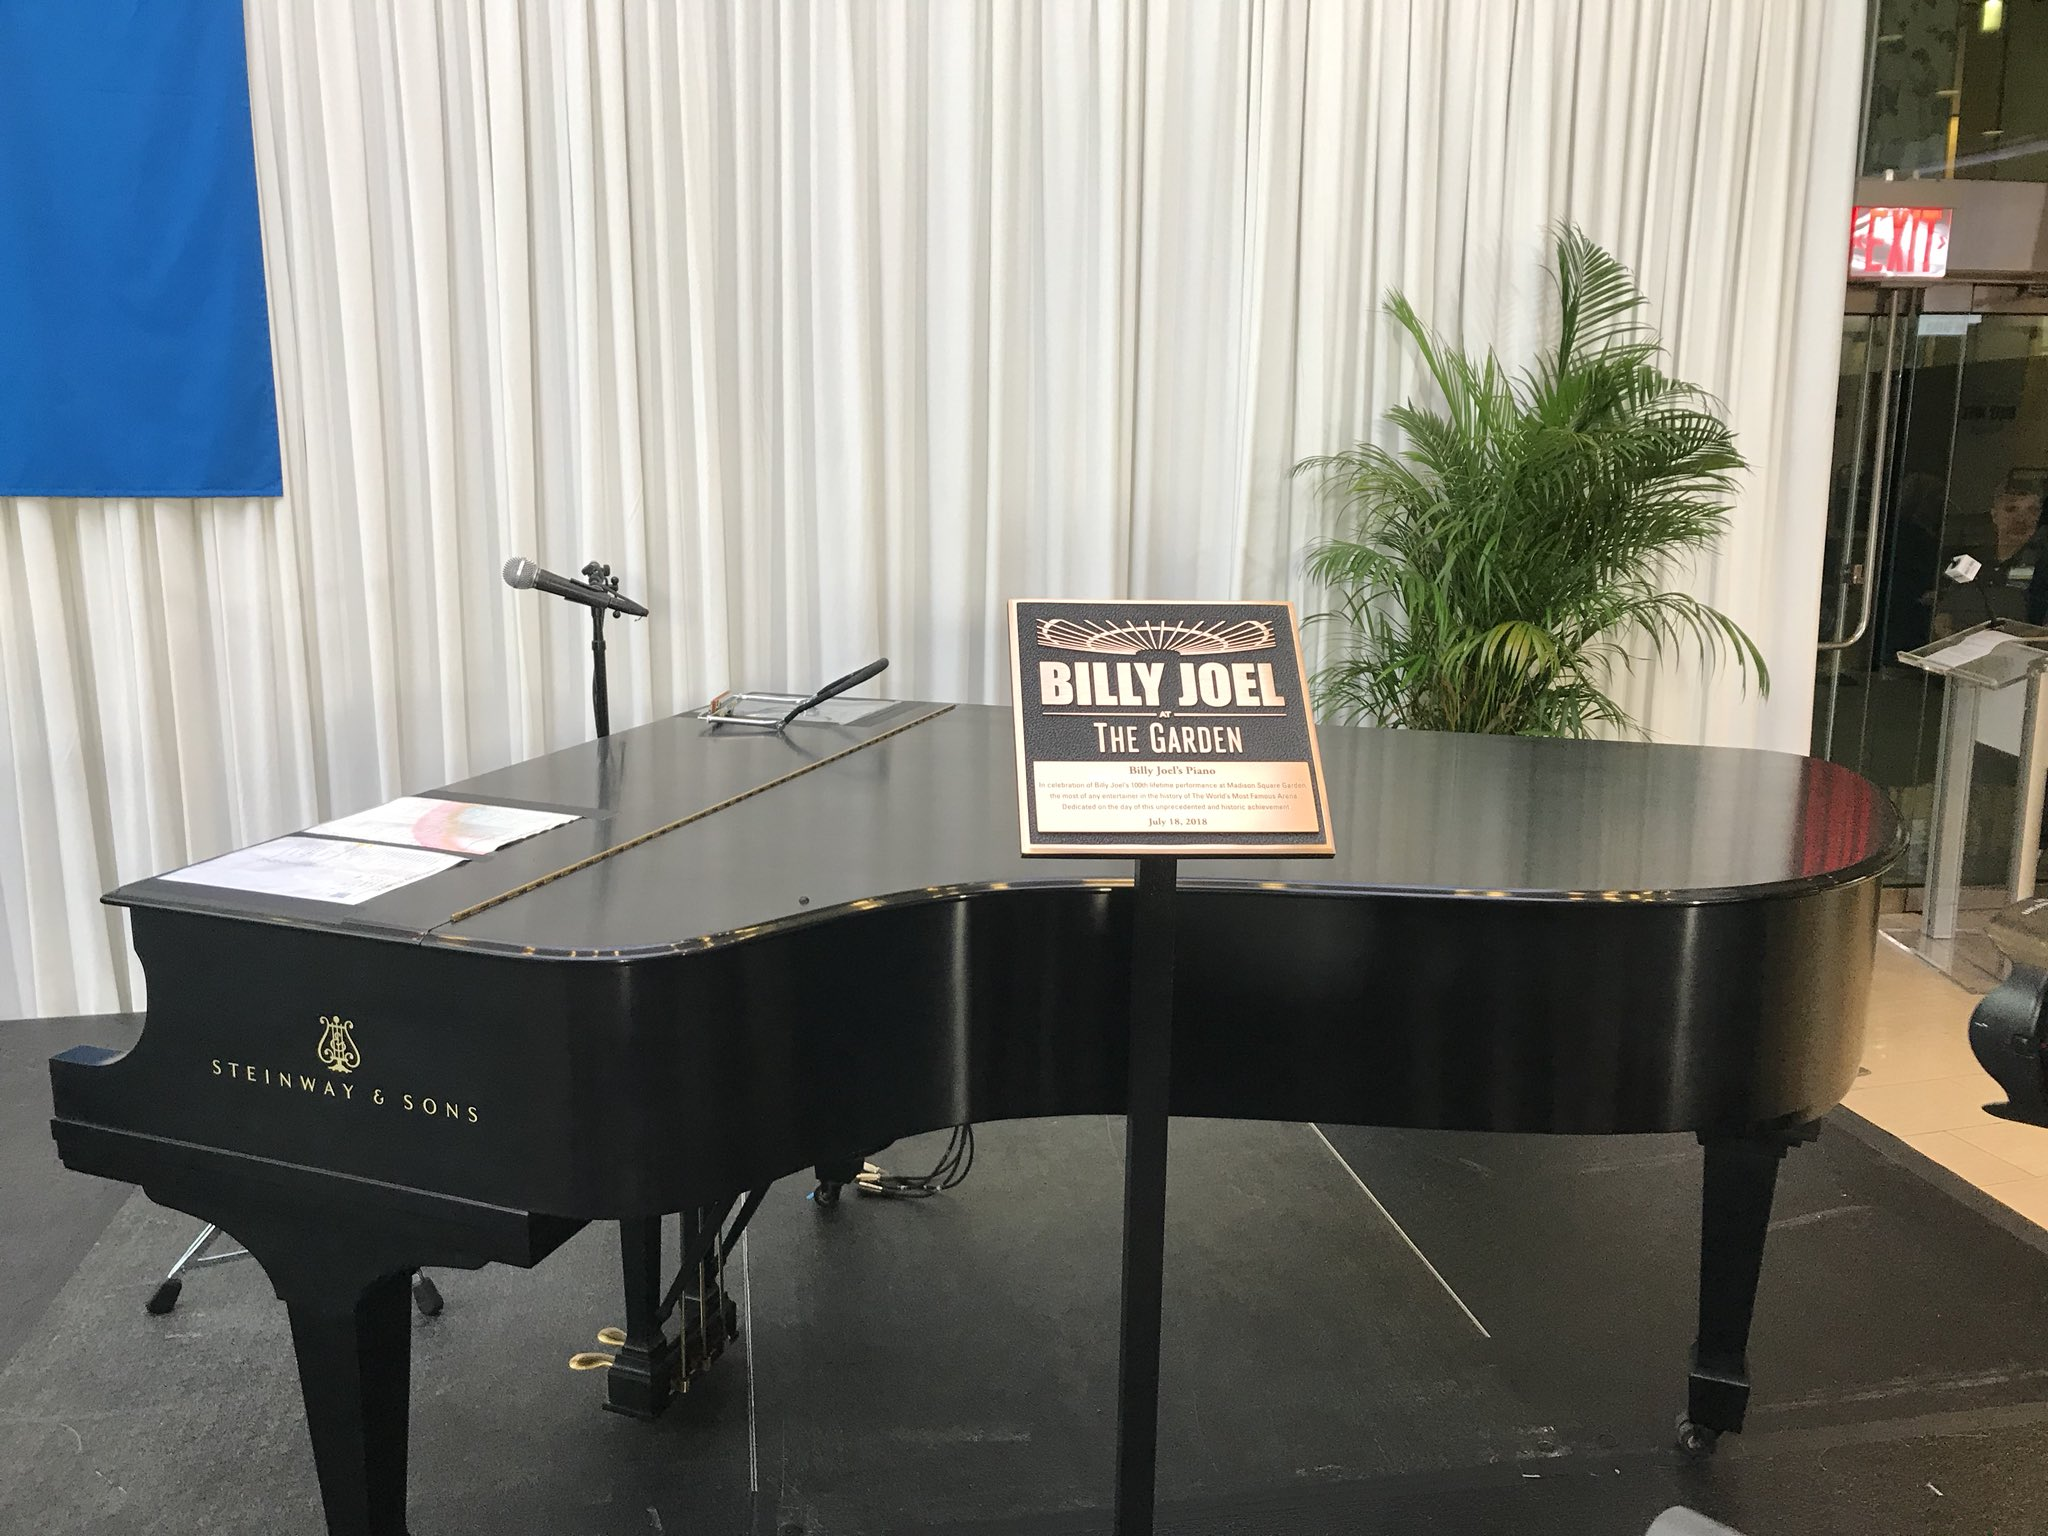 Reloaded twaddle – RT @Q1043: This is @billyjoel's @SteinwayAndSons piano that will be permanently ...